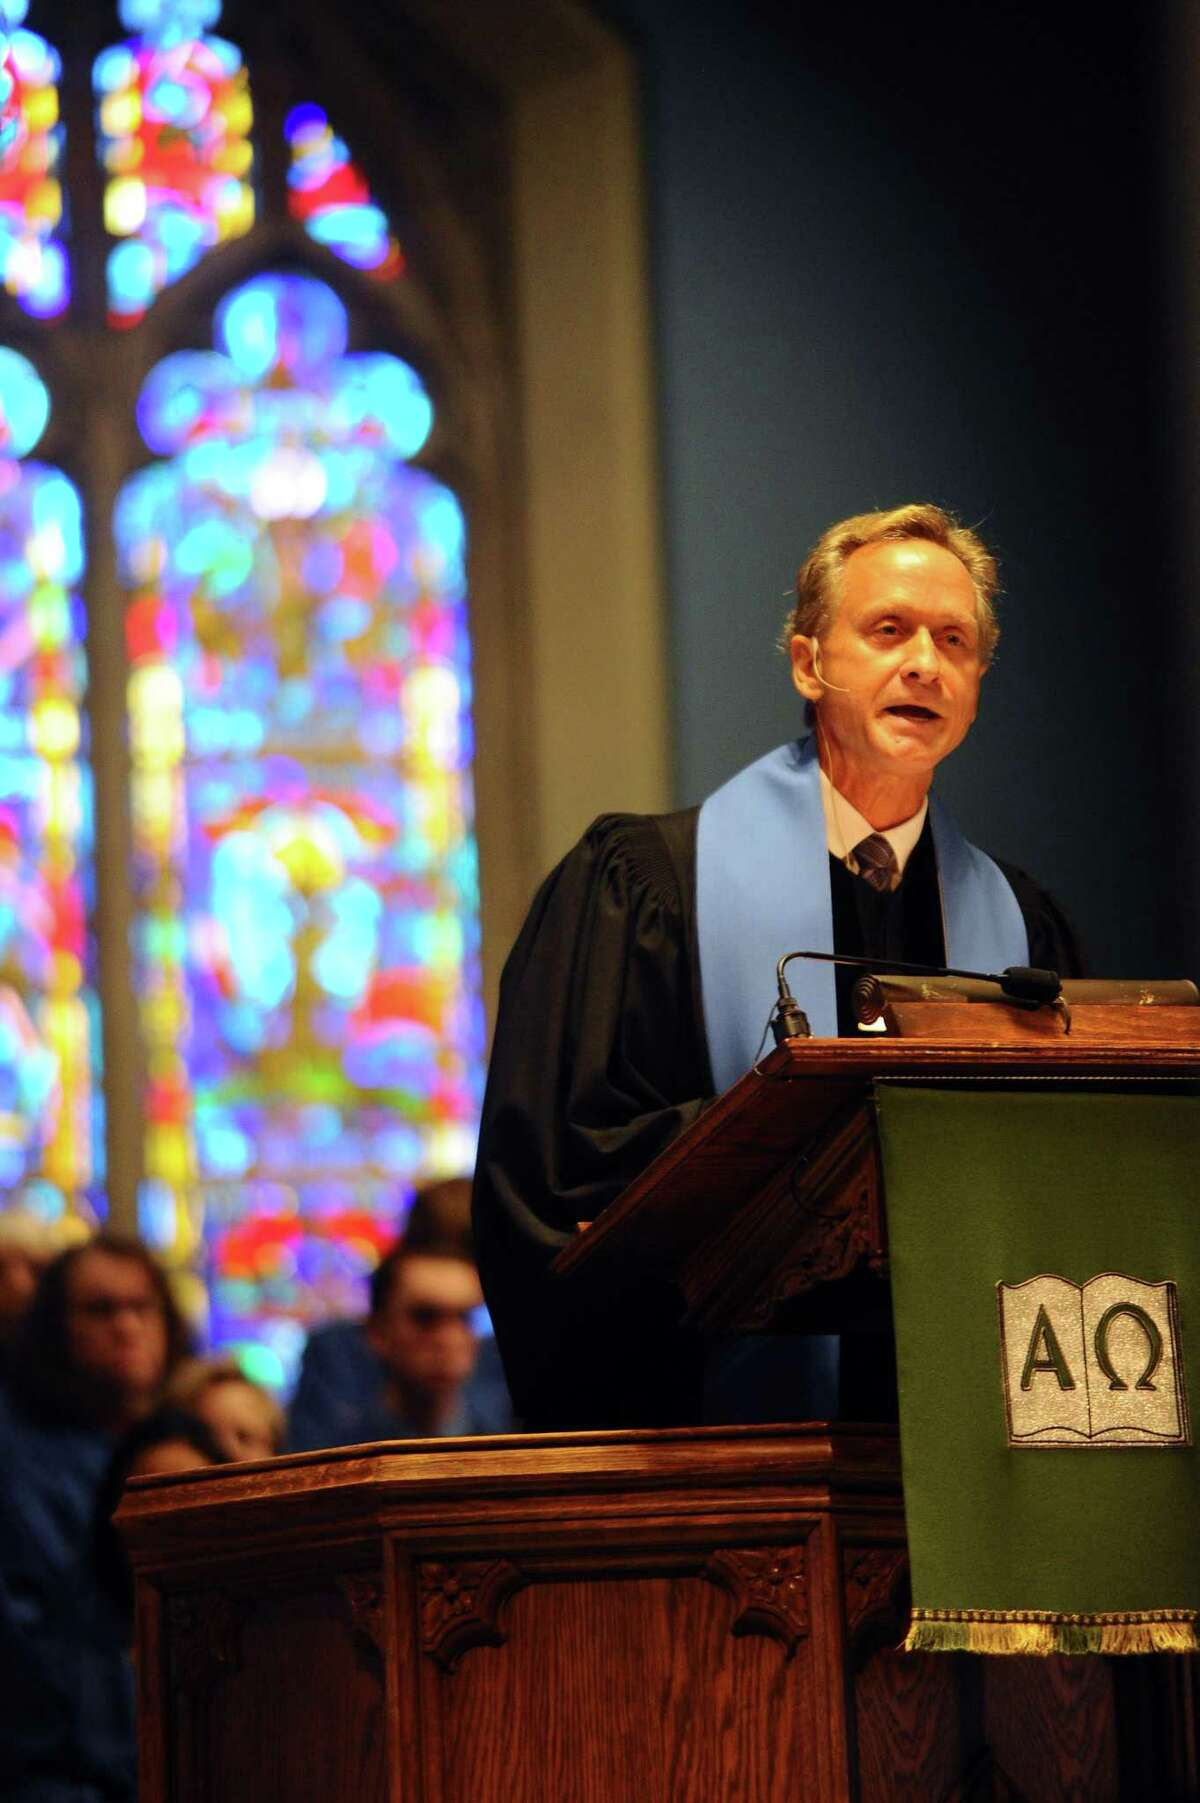 Rev. Richard DenUyl leads a Harvest Sunday service inside the First Congregational Church on Sound View Avenue in Greenwich, Conn. on Sunday, Nov. 19, 2017.